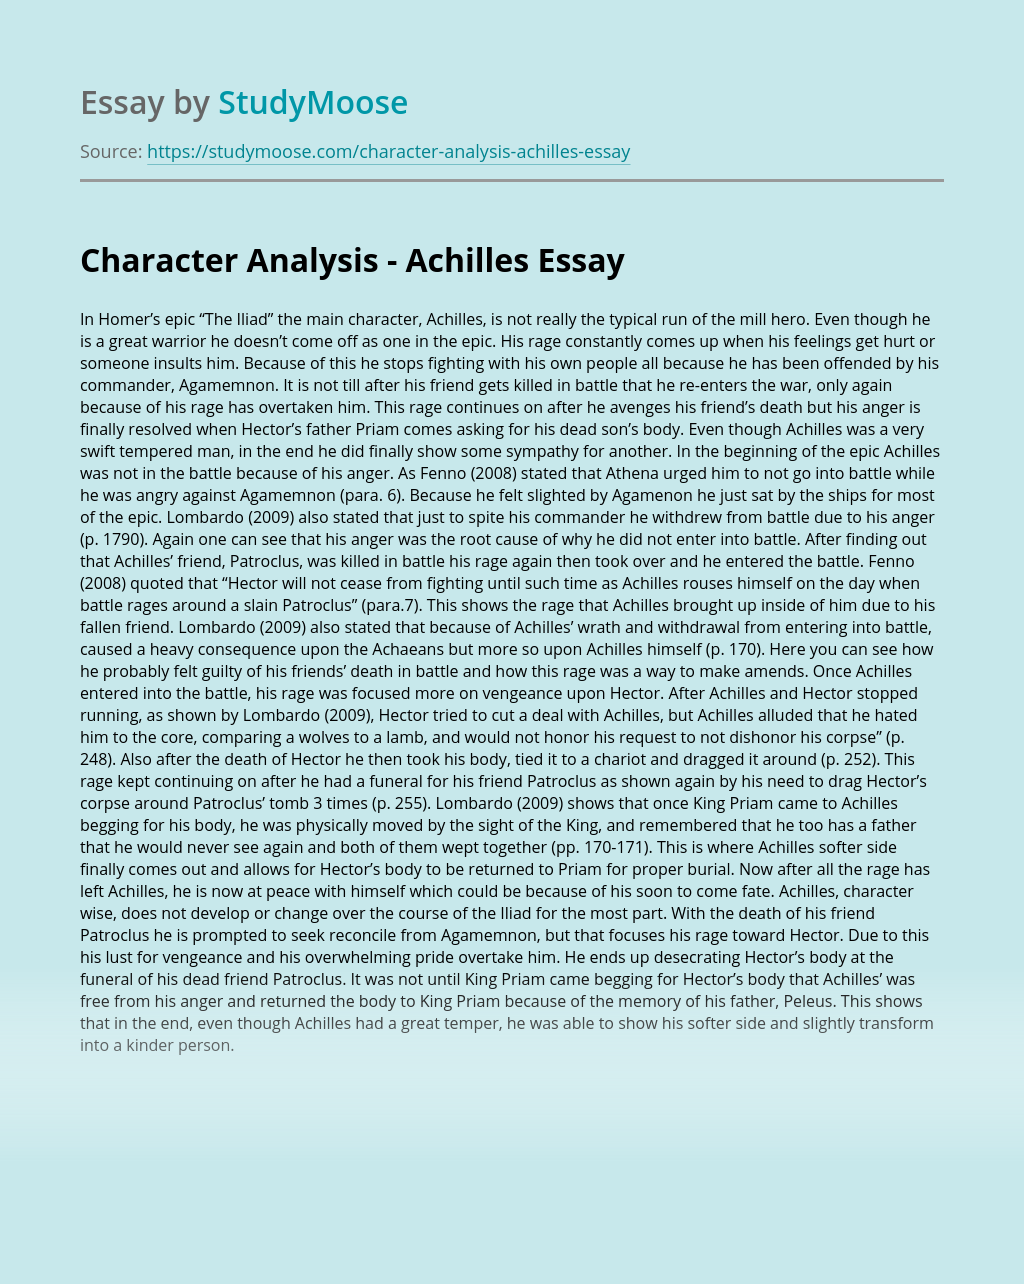 Character Analysis - Achilles